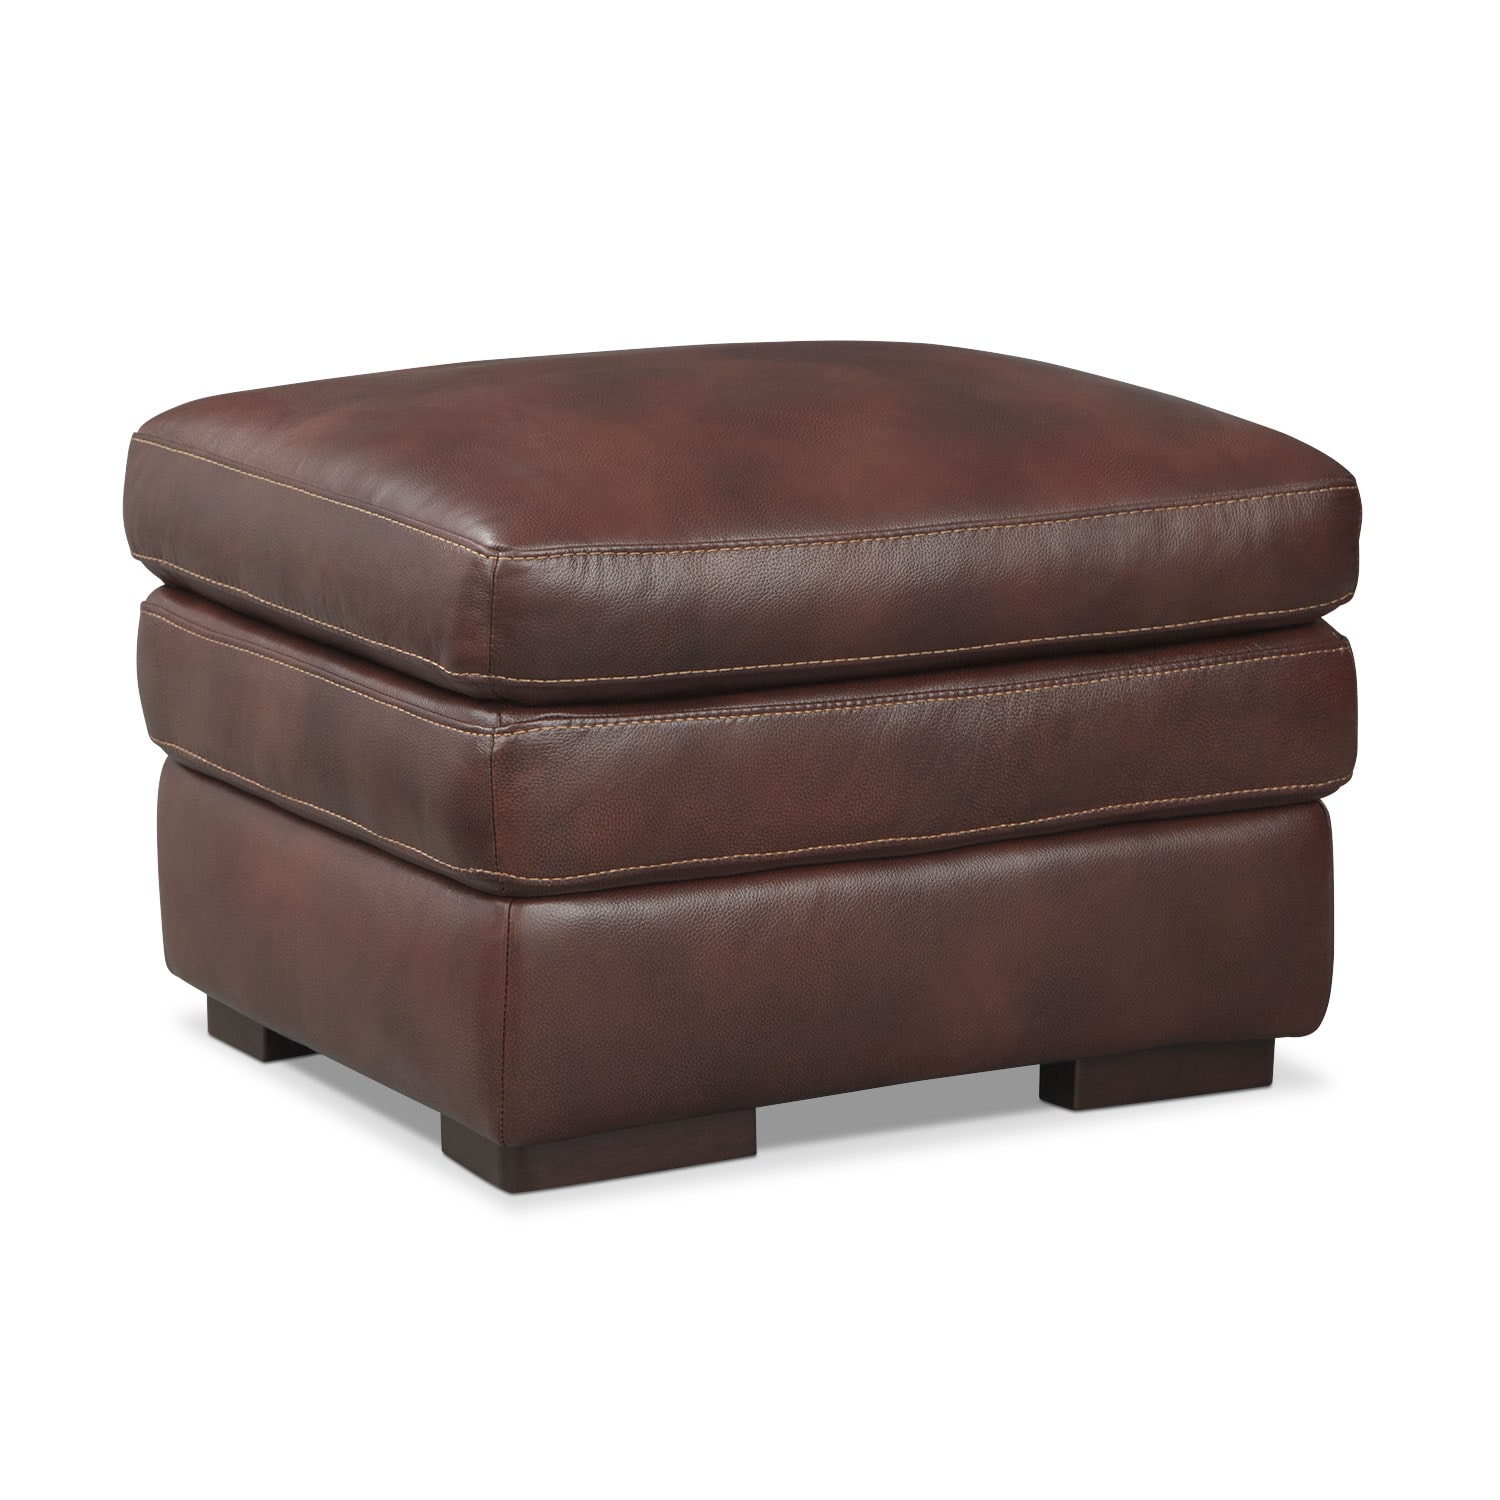 Living Room Furniture - Peyton Chestnut Ottoman